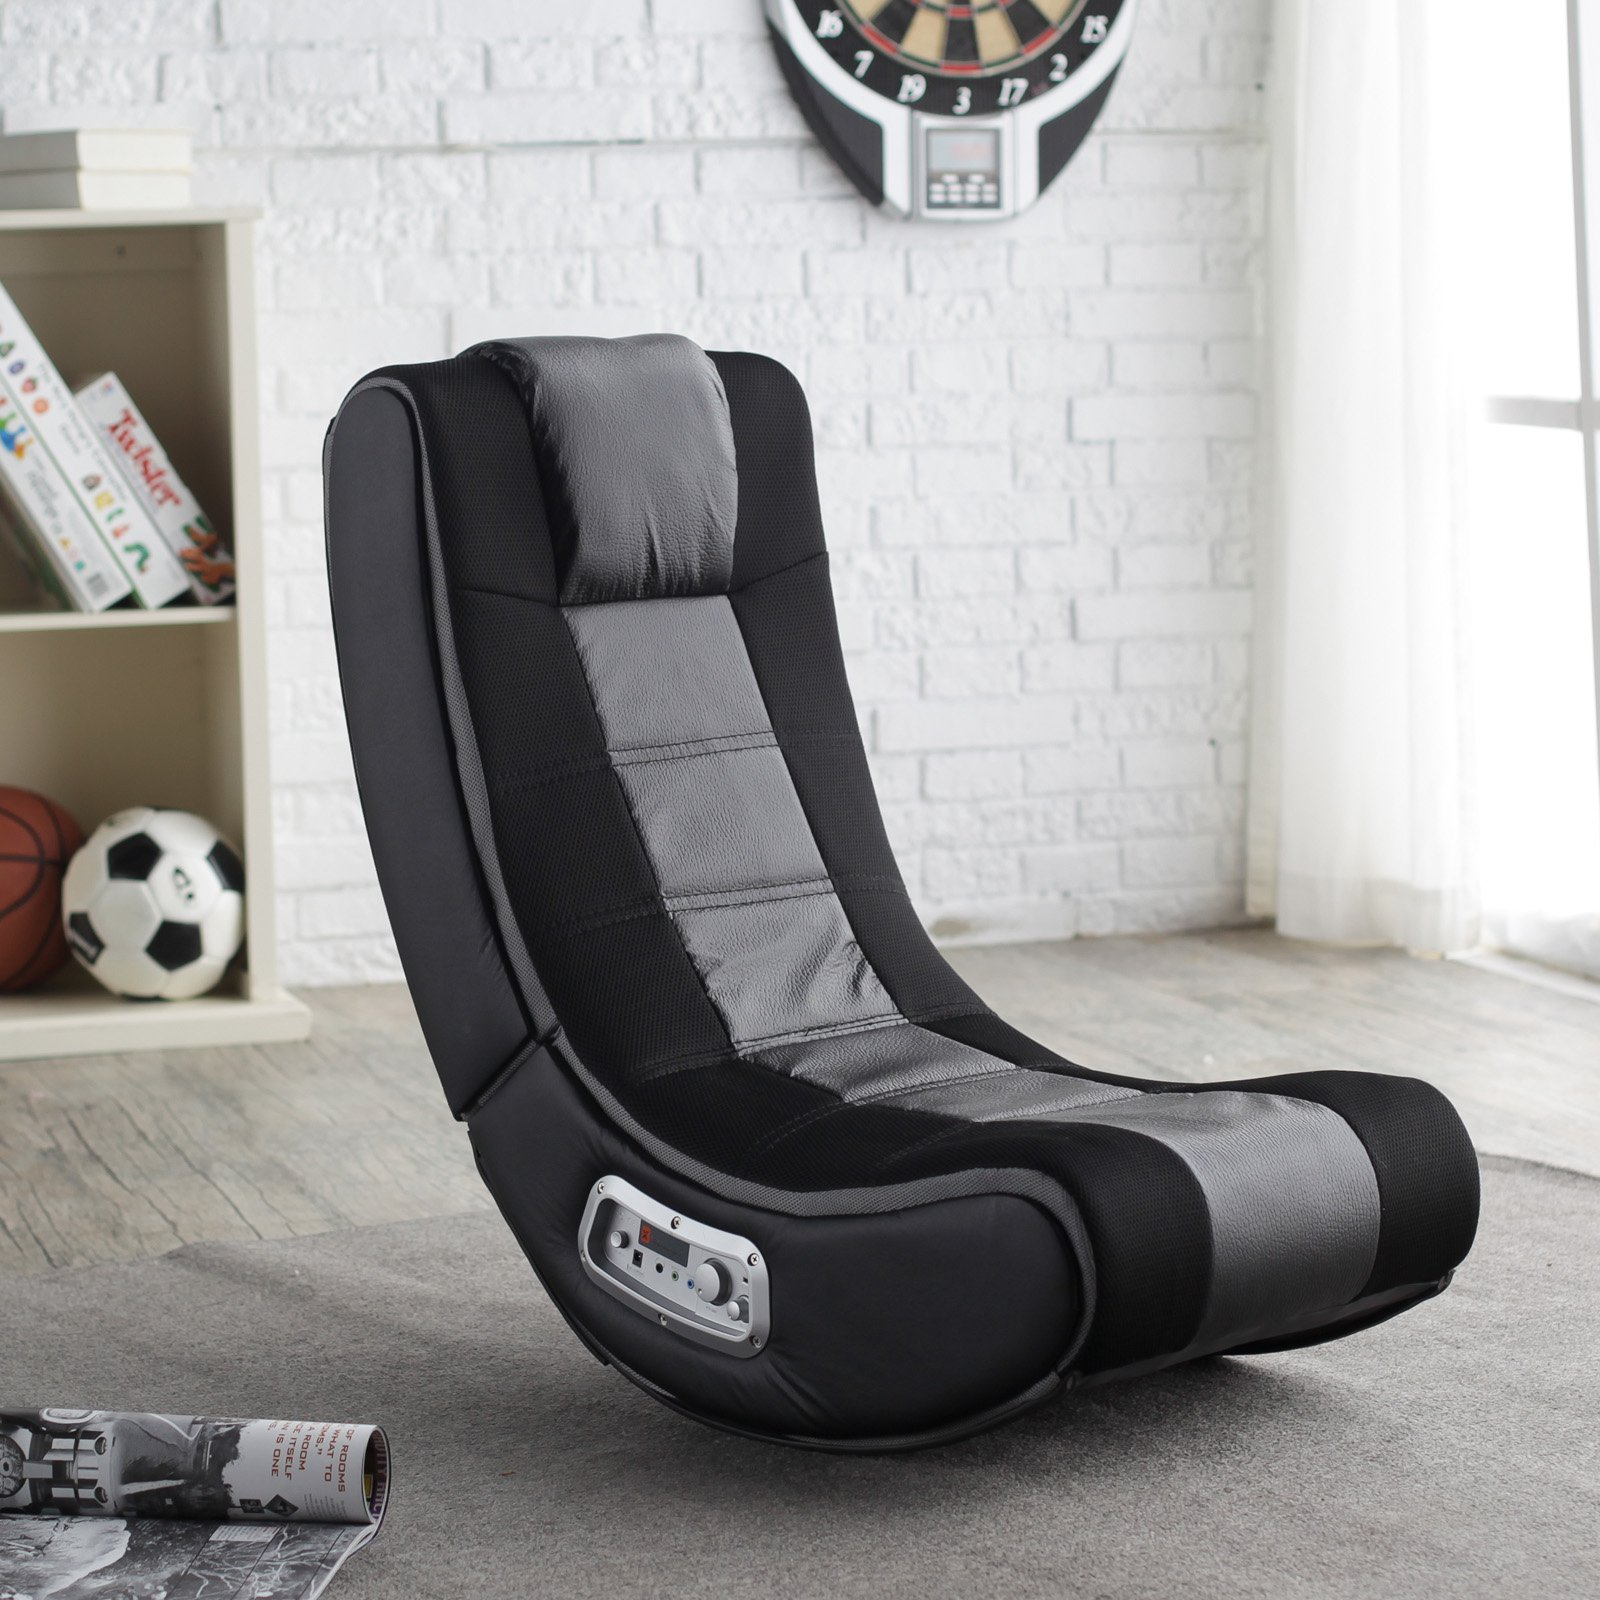 Home Design Games For Xbox 360: Wireless Gaming Chairs For XBox 360